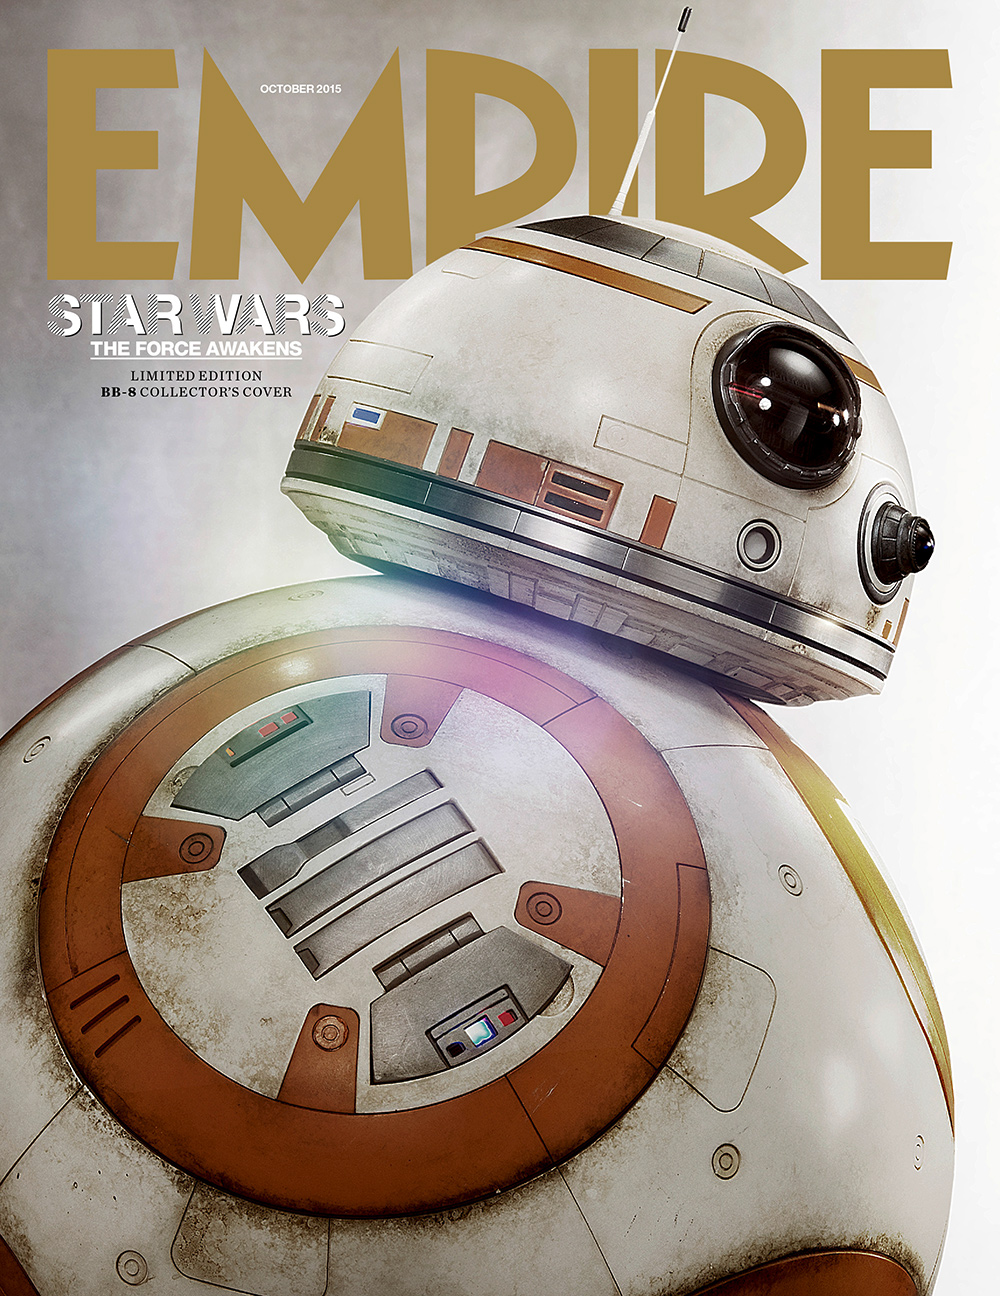 star wars the force awakens' bb8 gets its own empire